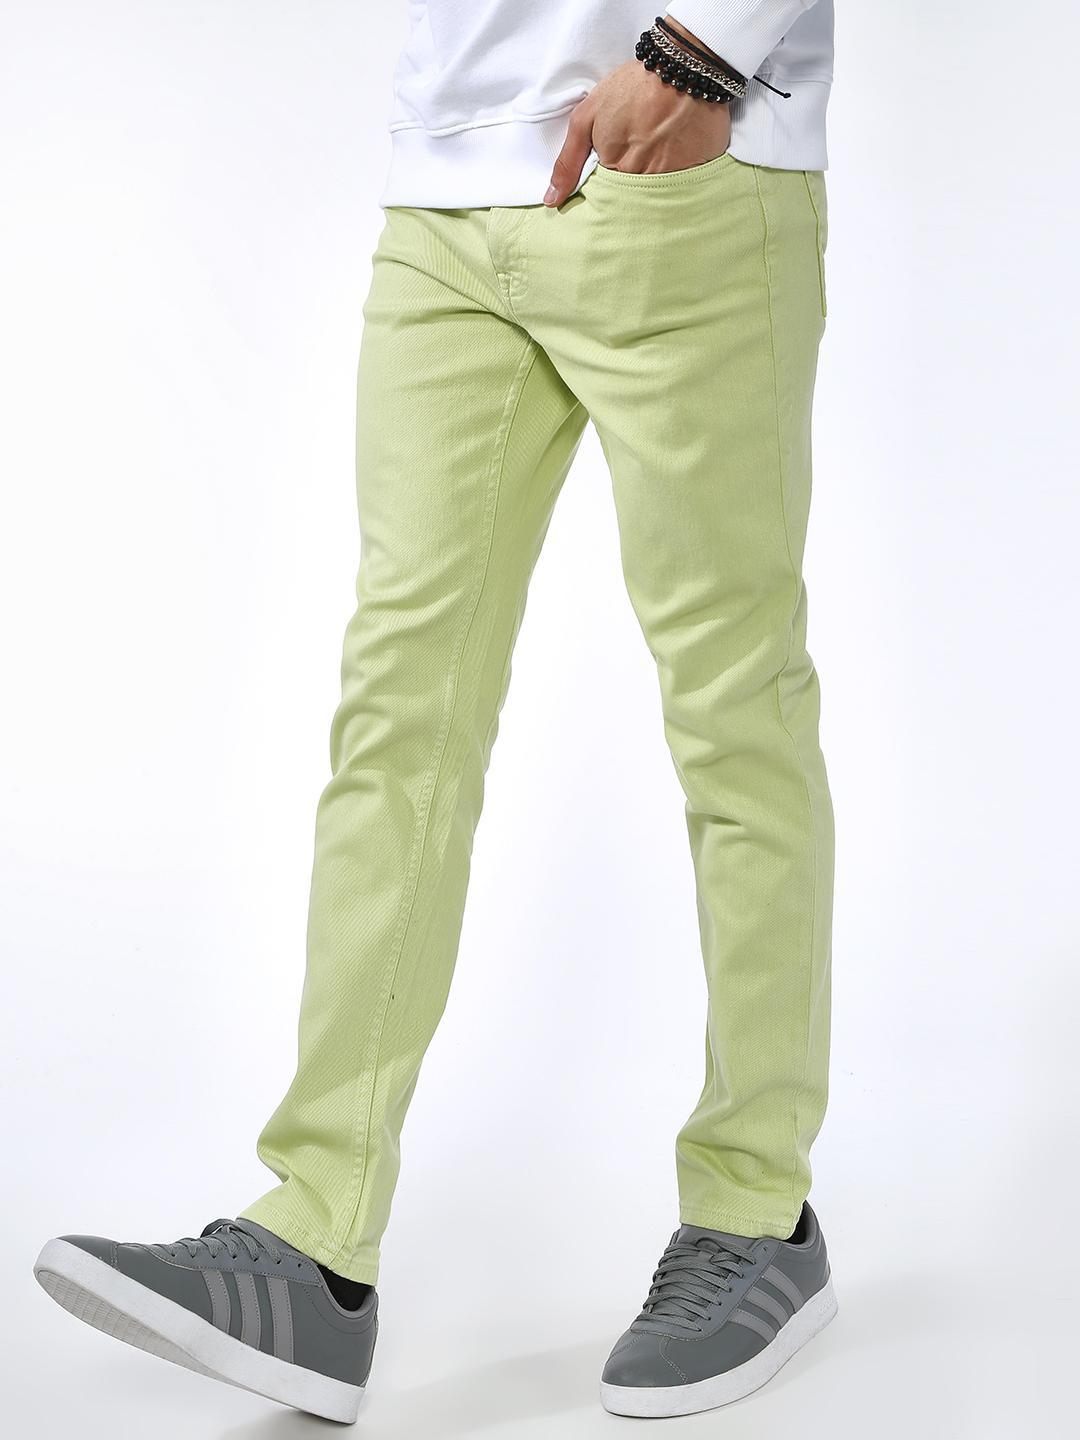 Blue Saint Green Basic Skinny Fit Jeans 1